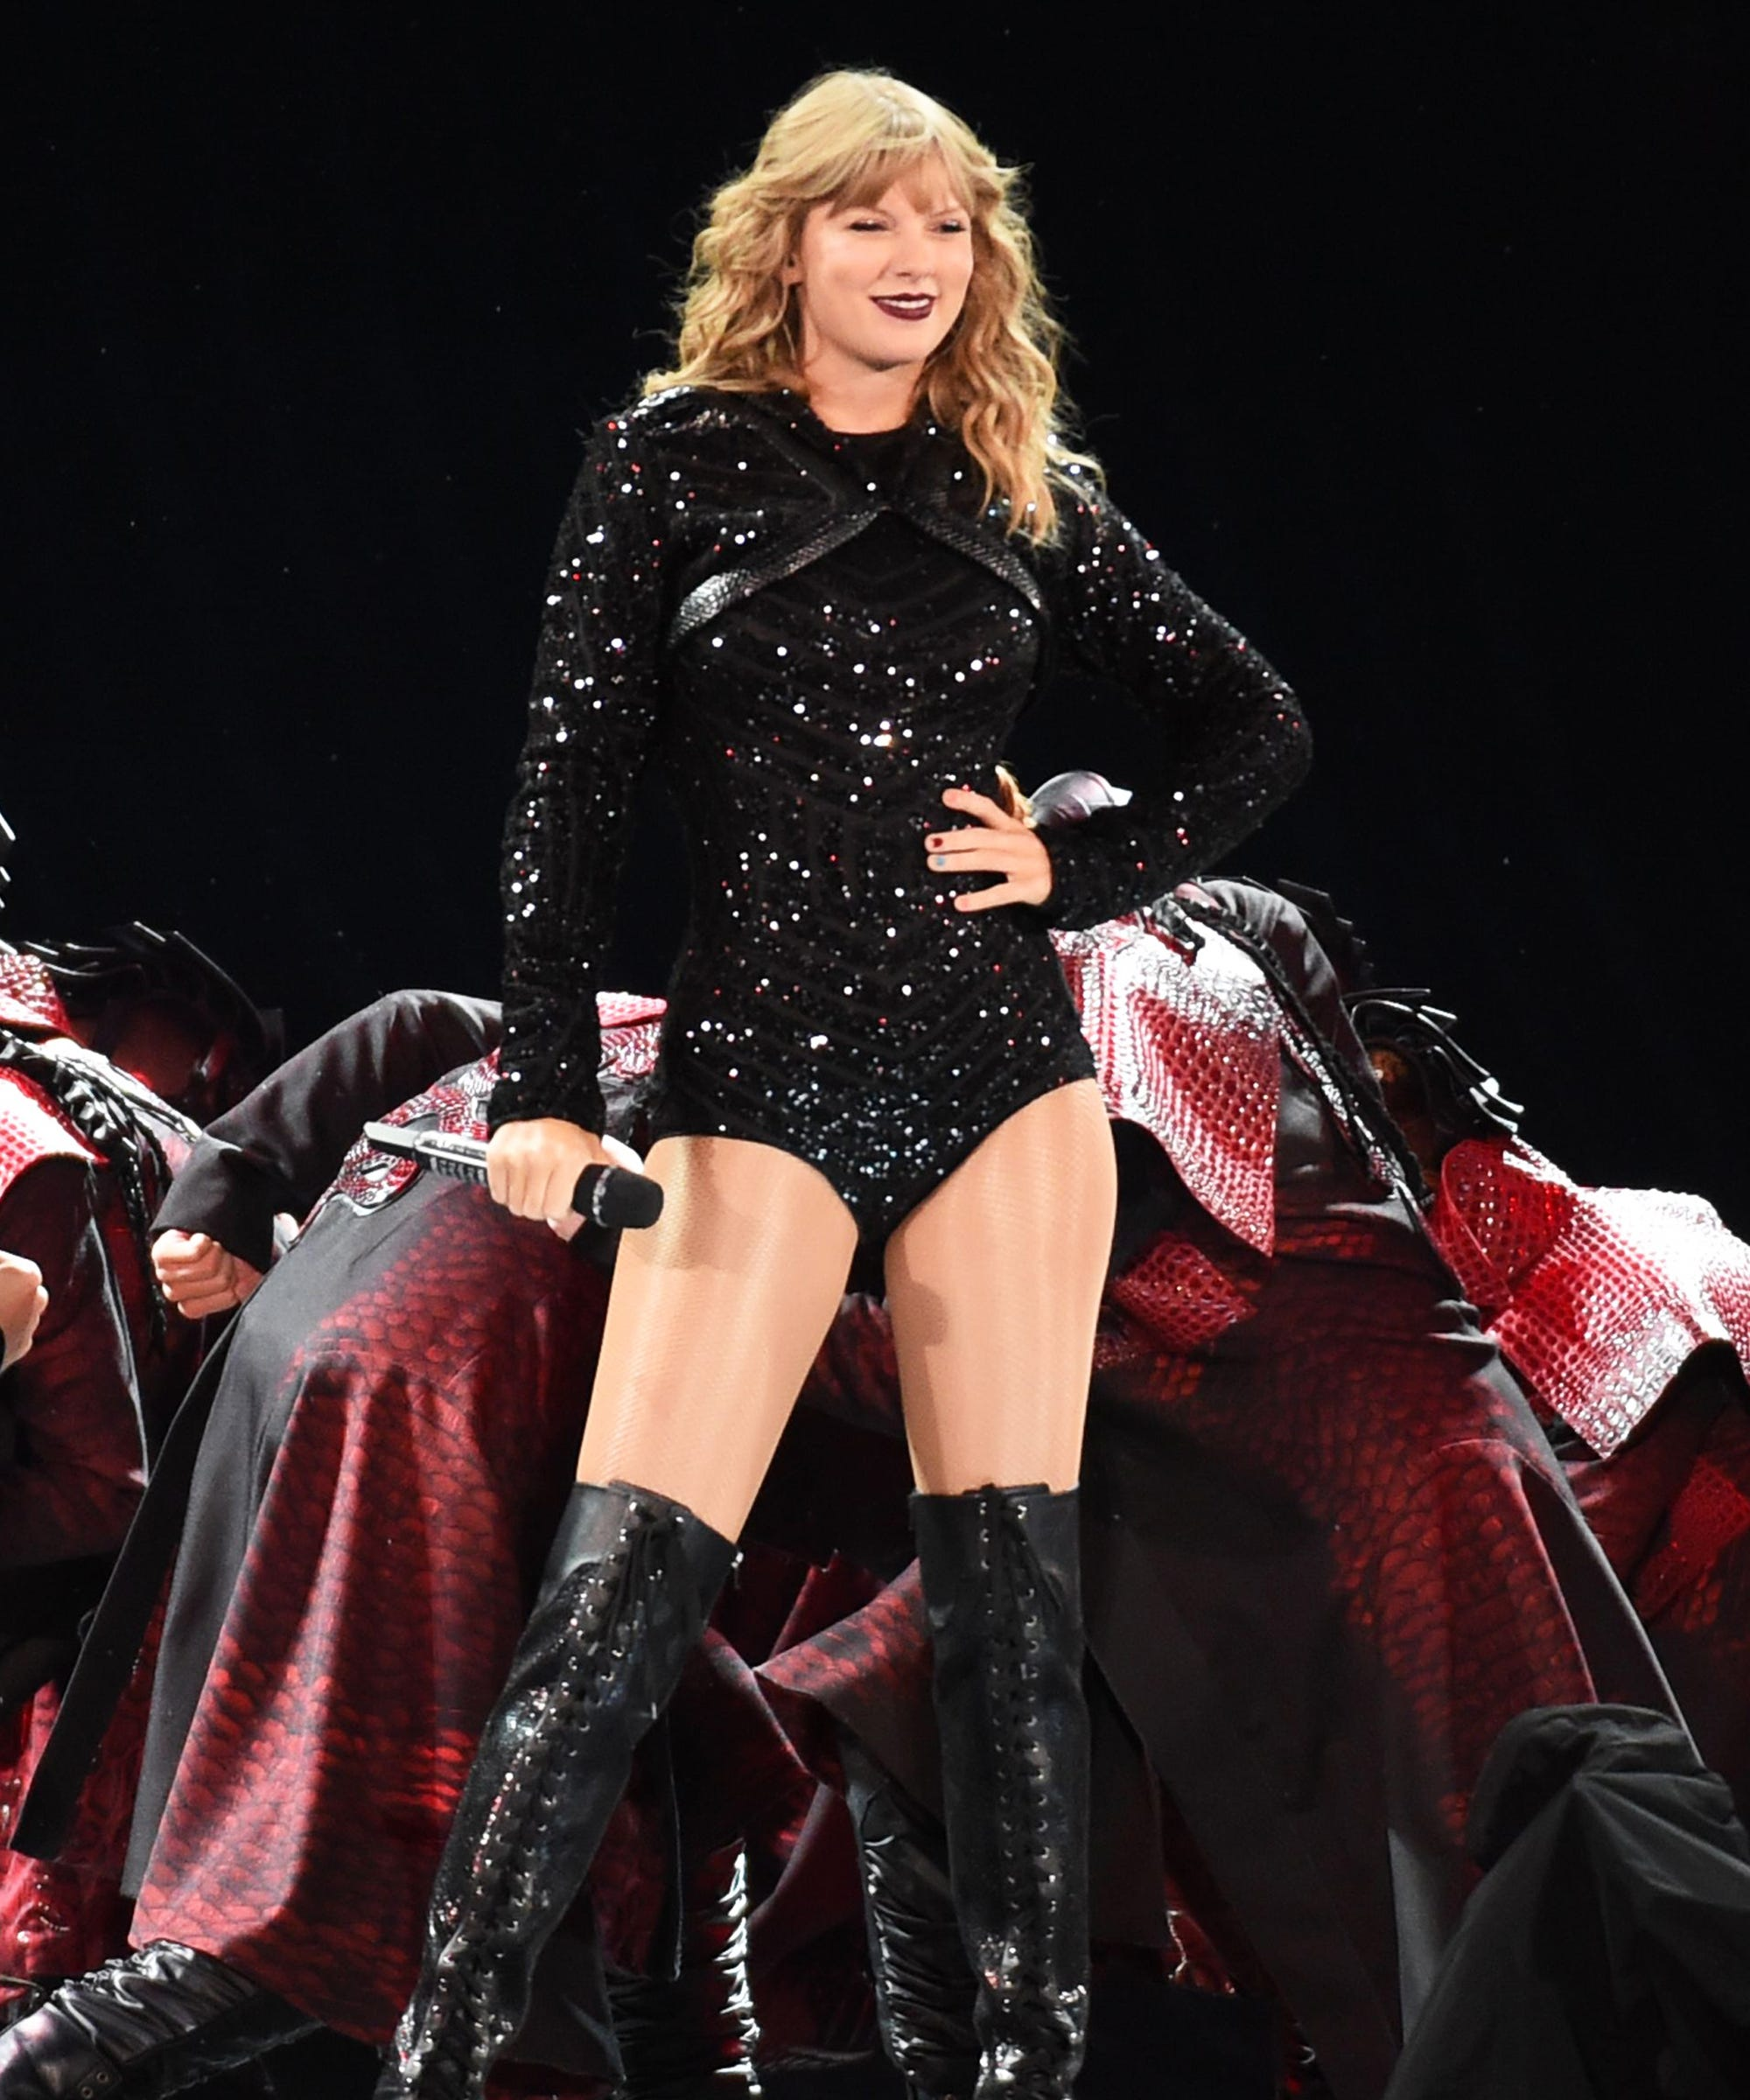 Taylor Swift Takes Her Reputation Tour To Pittsburgh